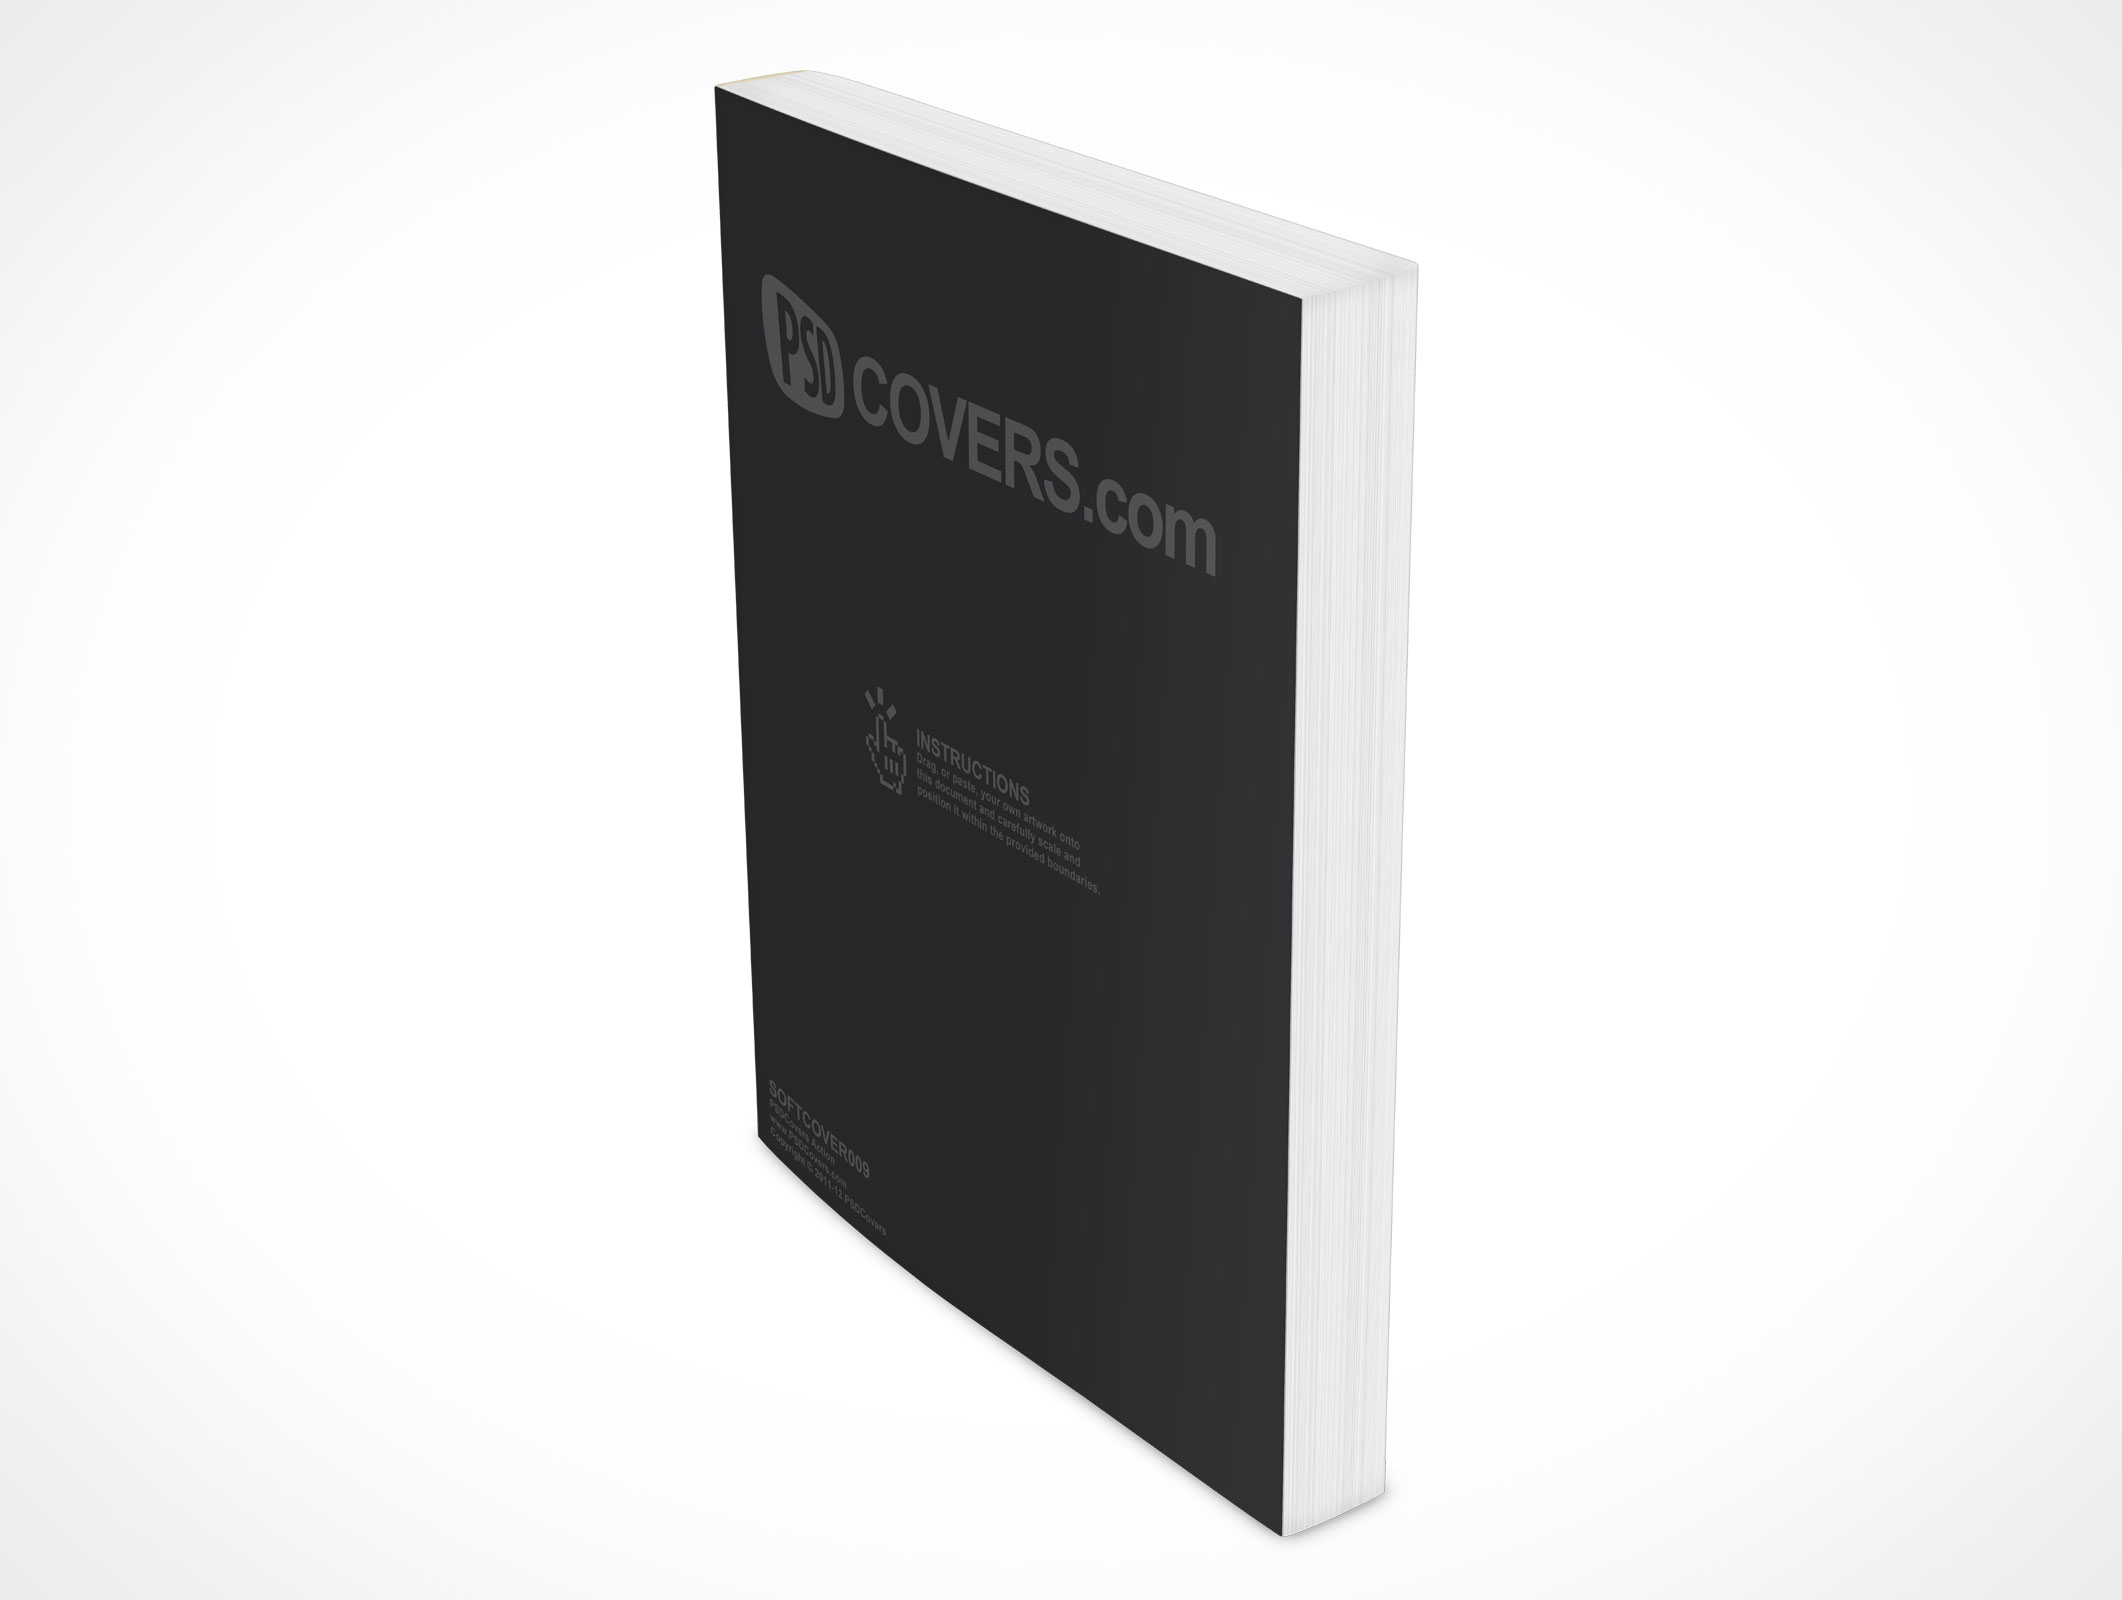 SOFTCOVER009